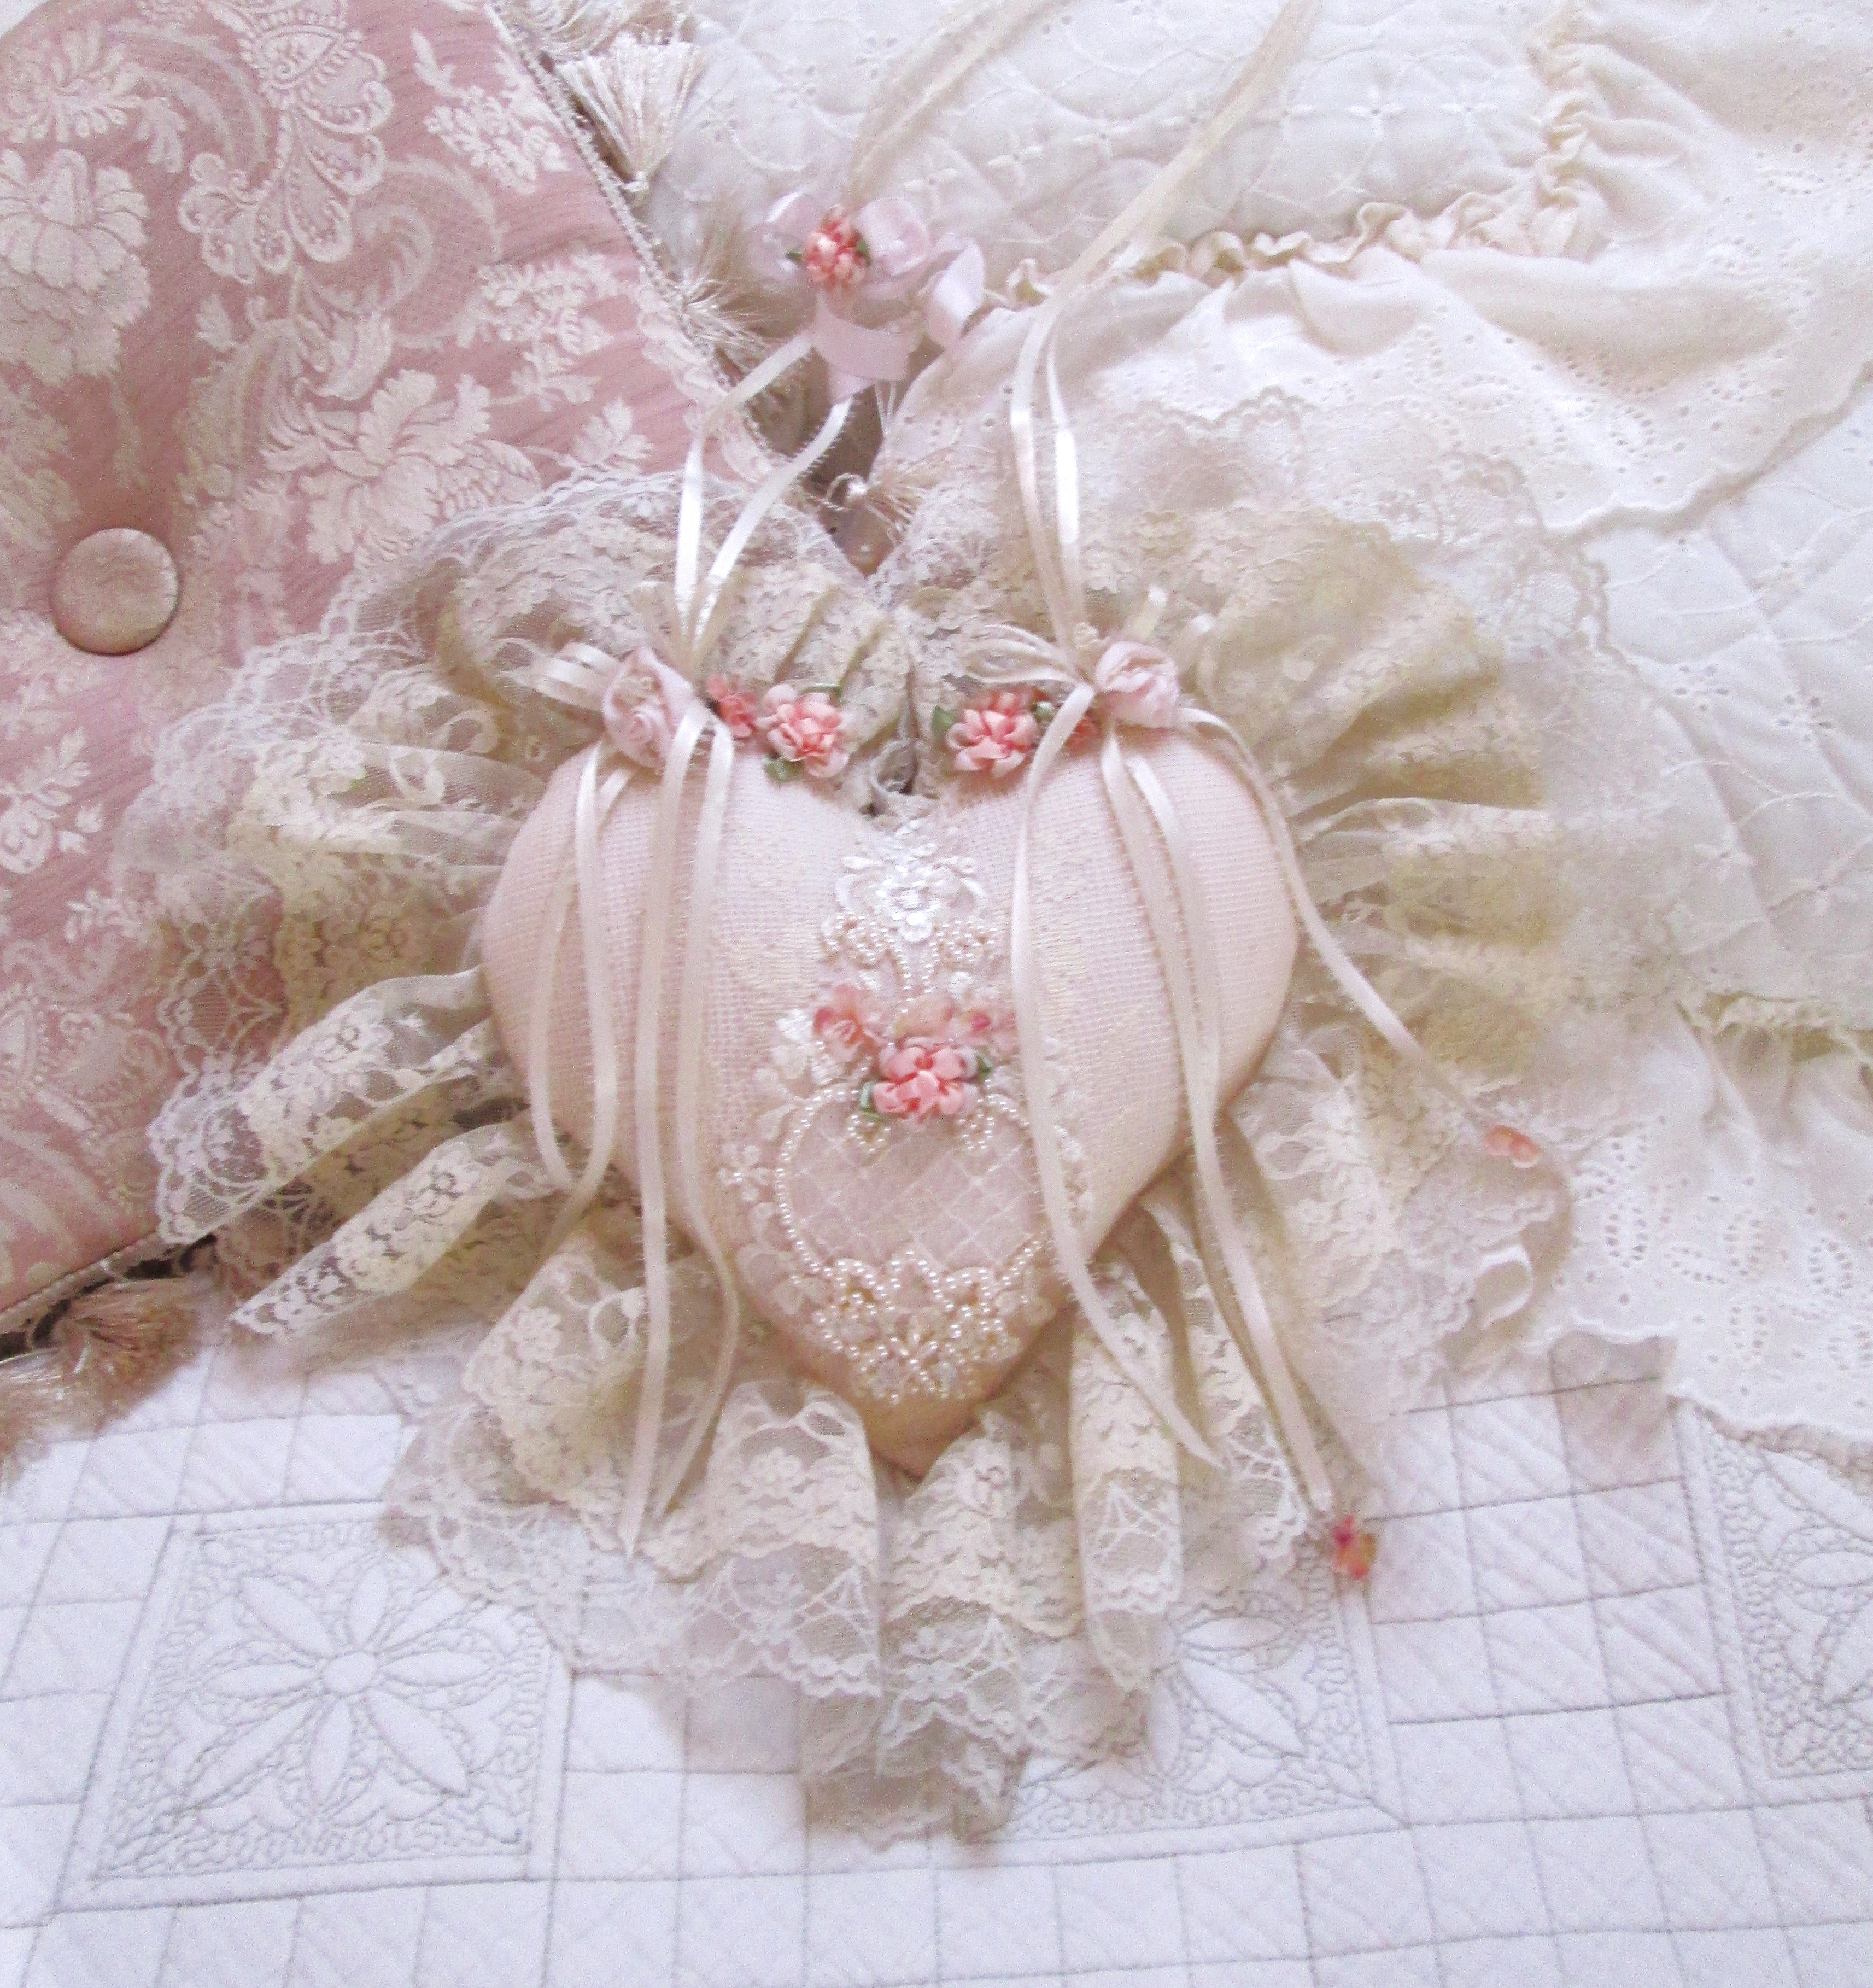 Lace heart victorian shabby chic heart wedding shower ...